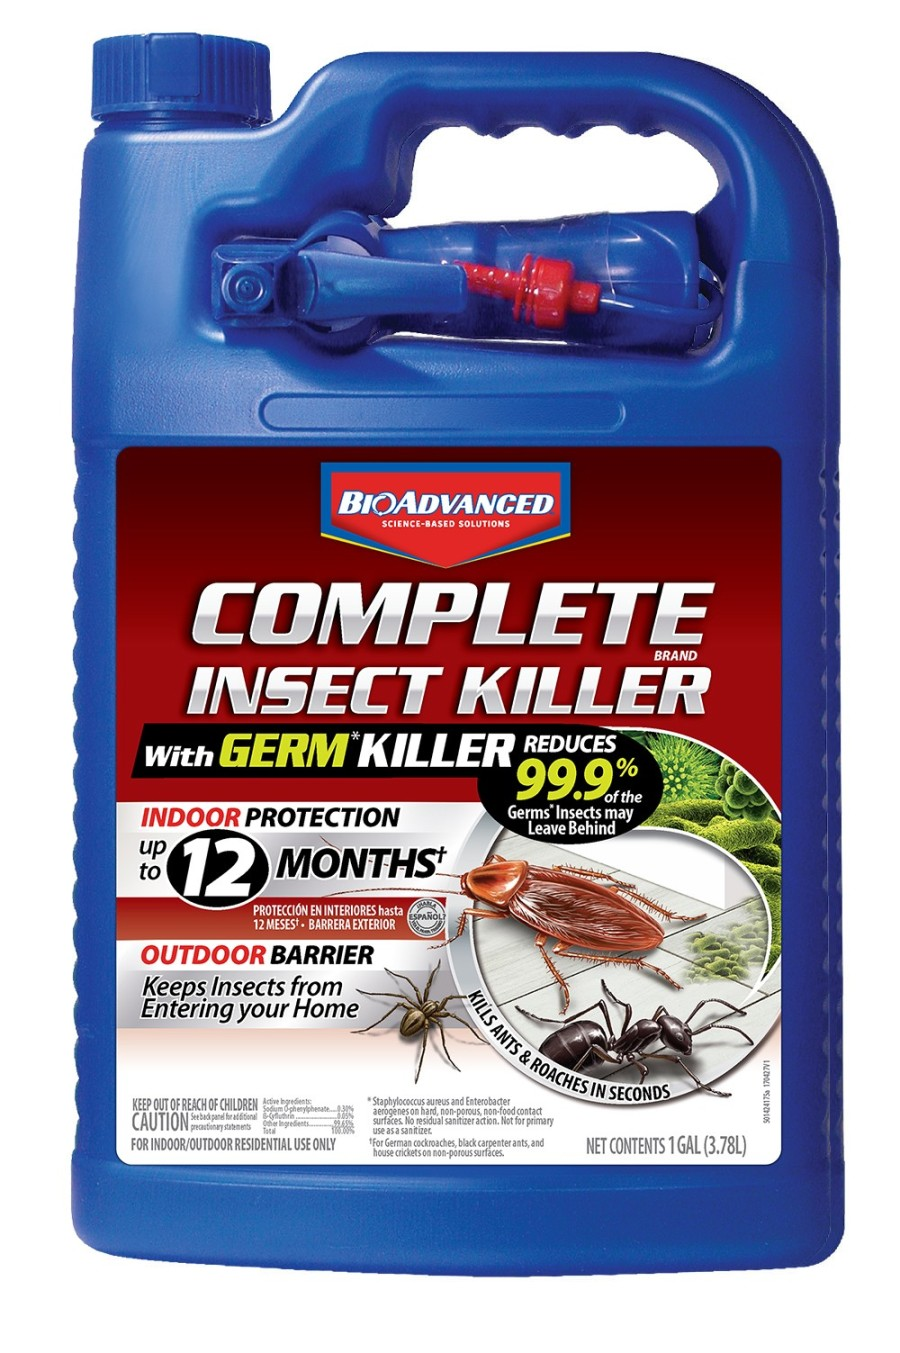 BioAdvanced Complete Insect Killer with Germ Killer Ready to Use 4ea/1 gal